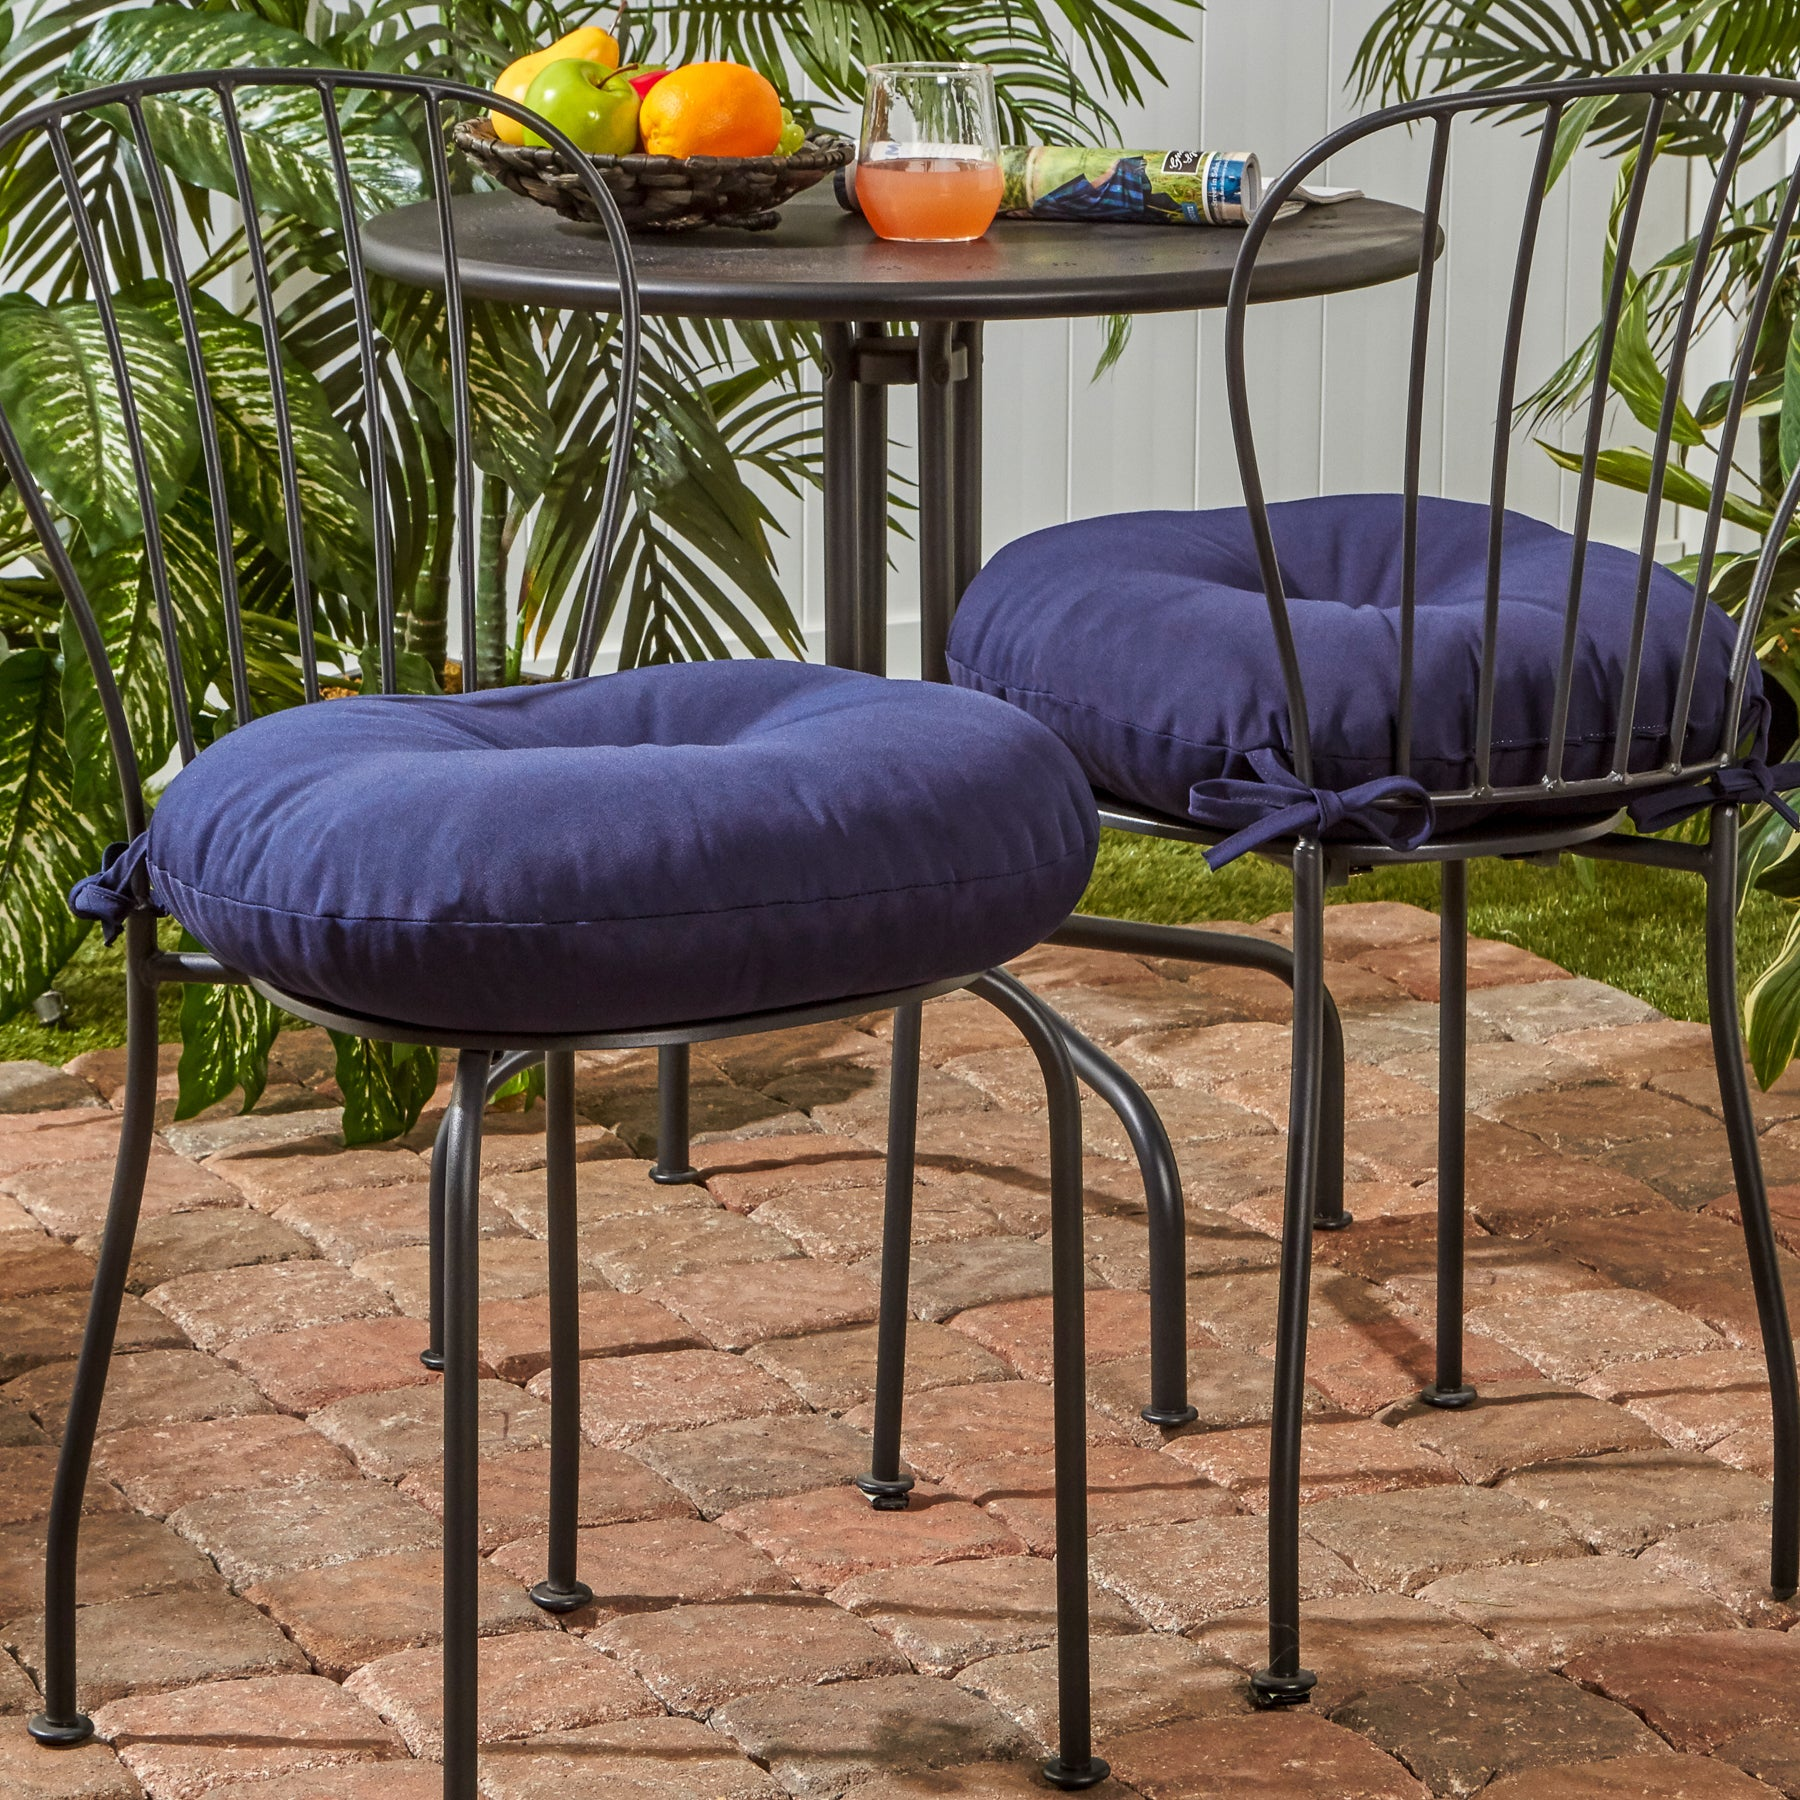 18 Inch Round Outdoor Bistro Chair Cushion (Set Of 2)   18w X 18l   Free  Shipping On Orders Over $45   Overstock   21008469